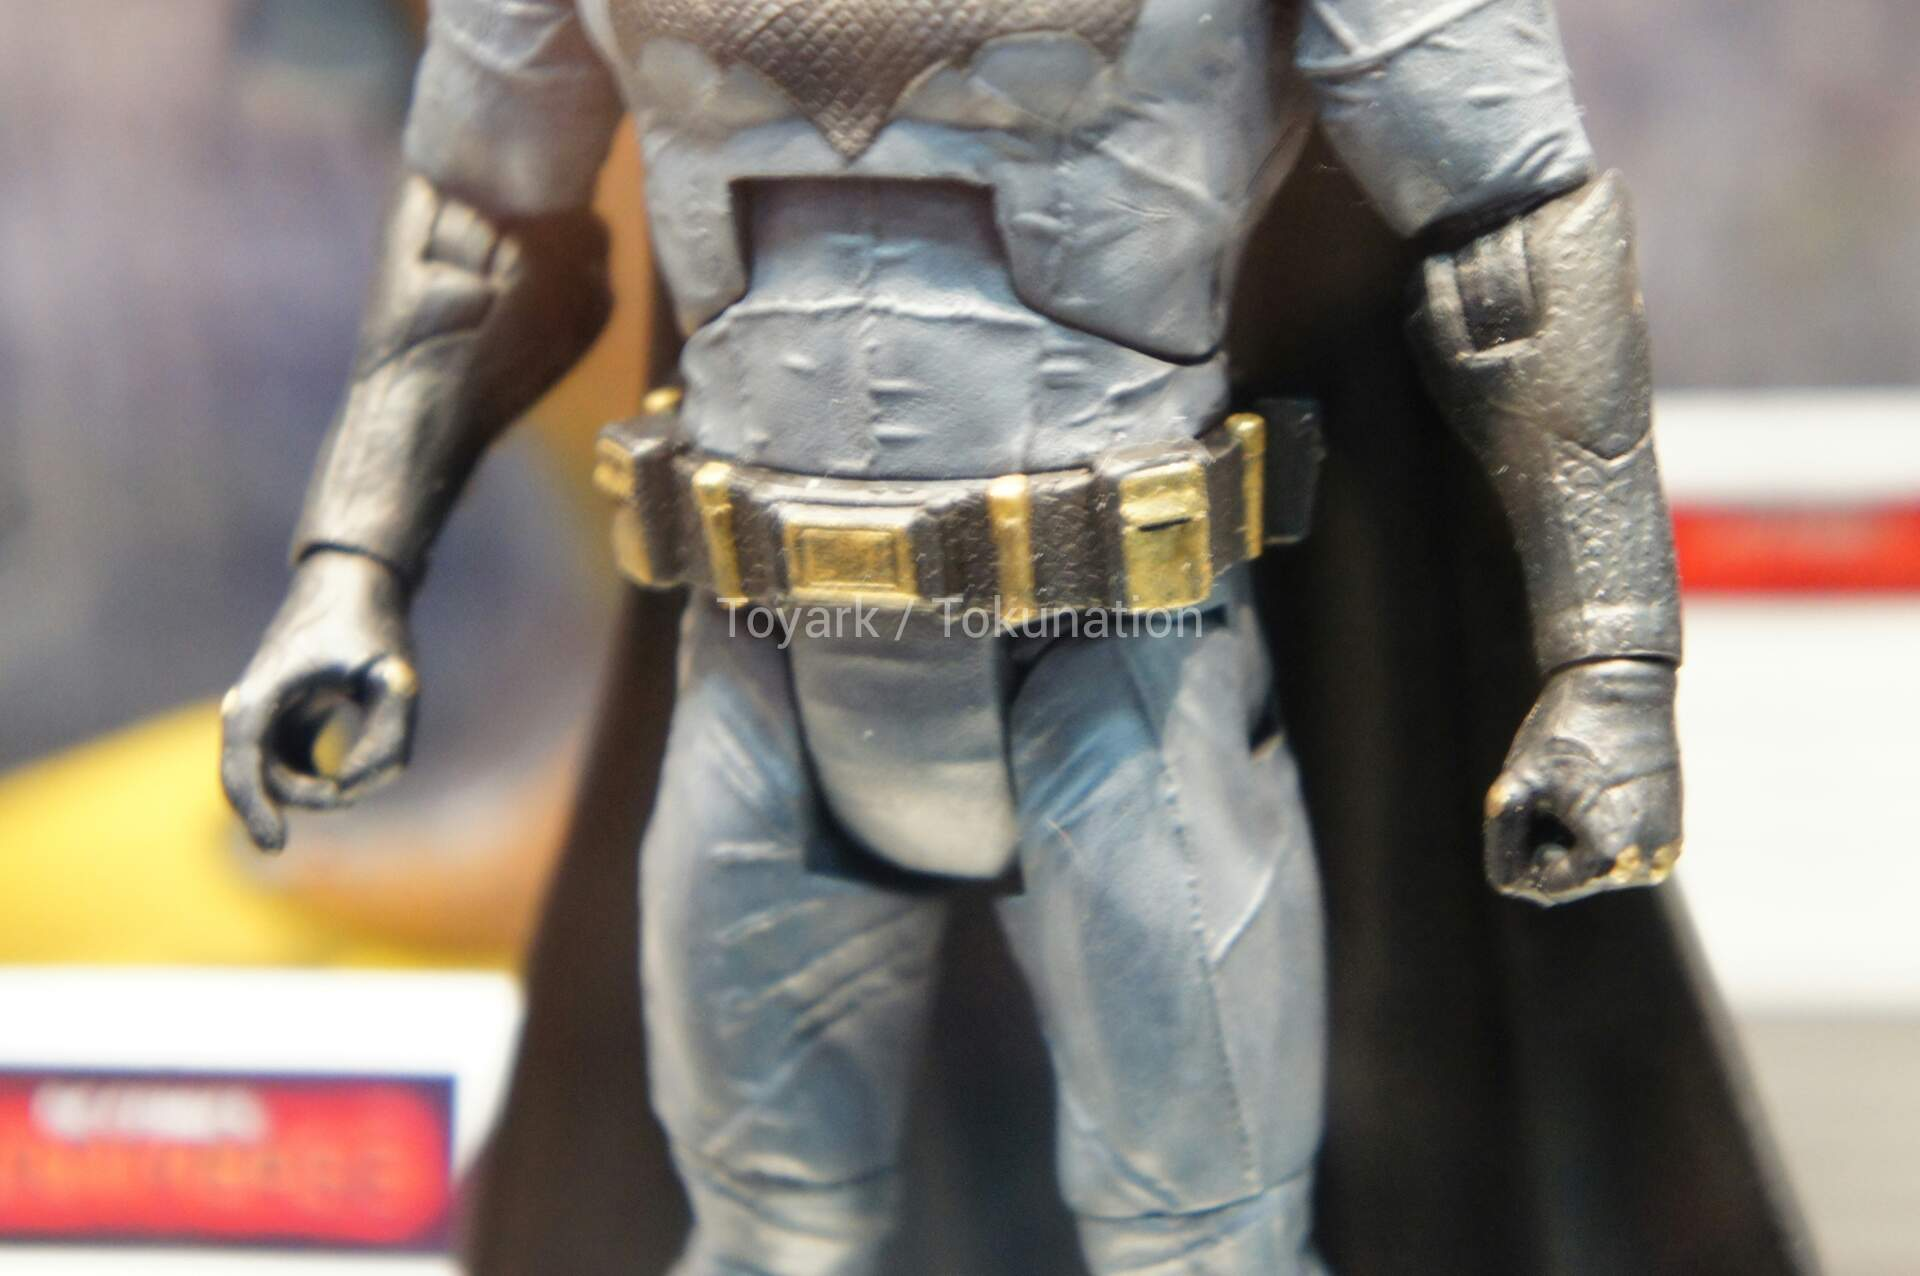 [CINEMA] [Tópico Oficial]Batman v. Superman - Barbara Gordon confirmada! - Página 7 SDCC2015-Mattel-Batman-v-Superman-102